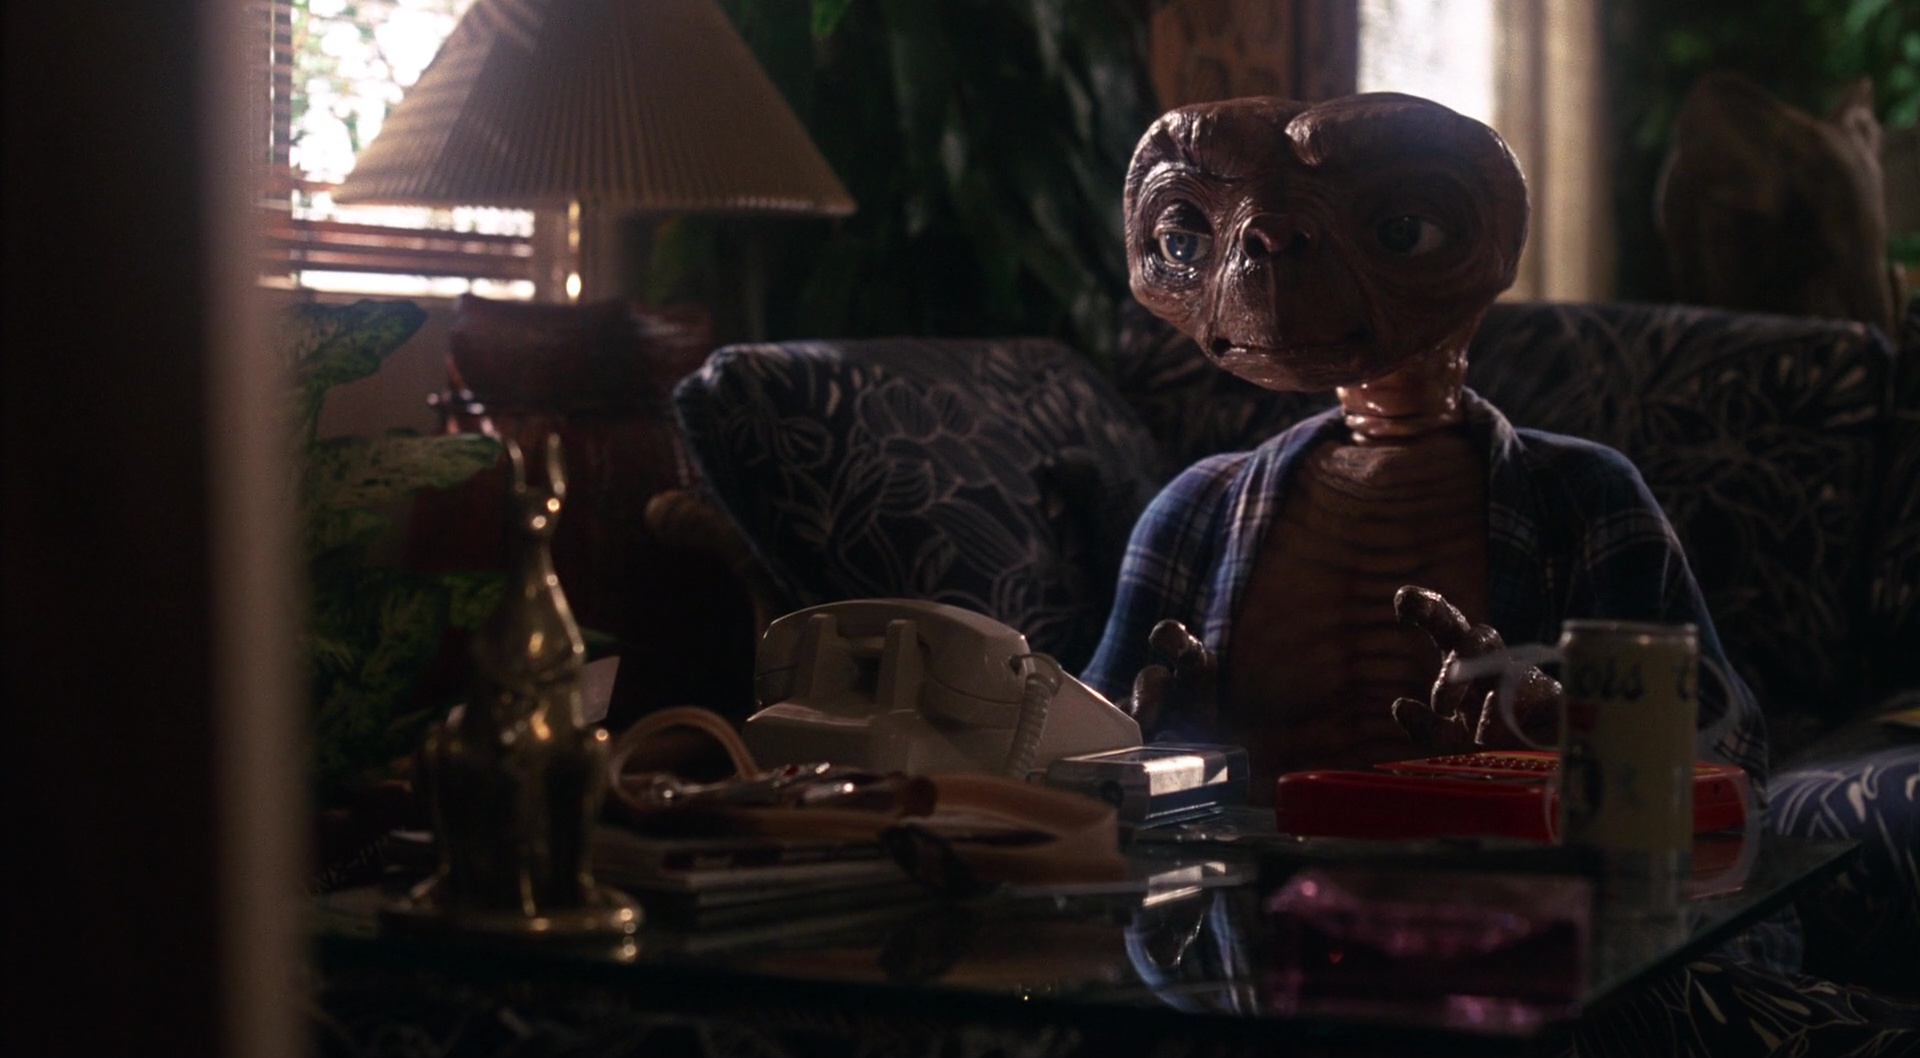 E.T. the Extra-Terrestrial film still 4